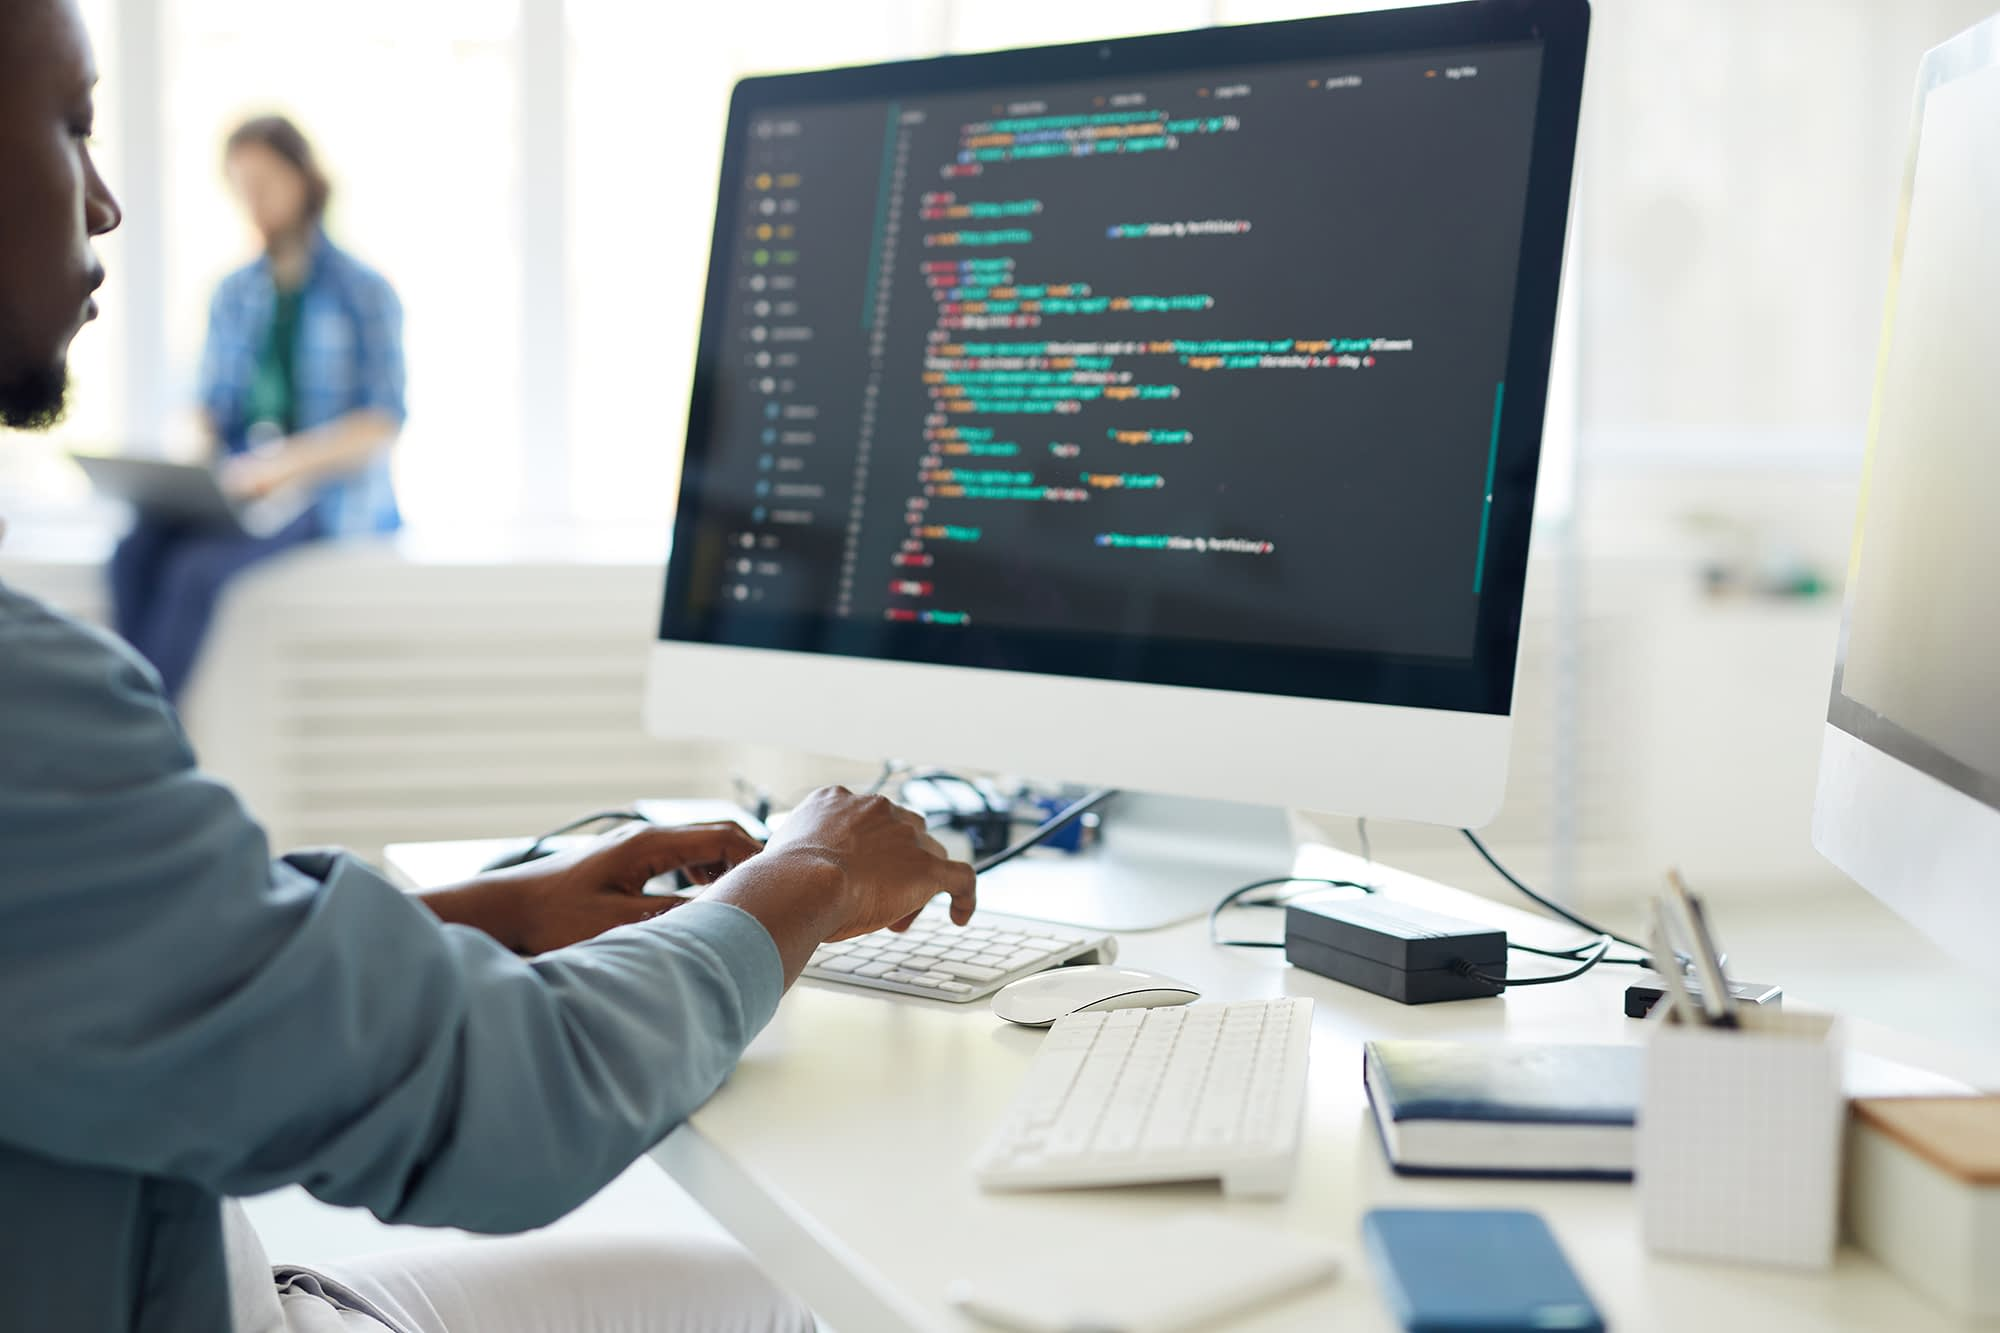 Becoming A Self-Taught Developer